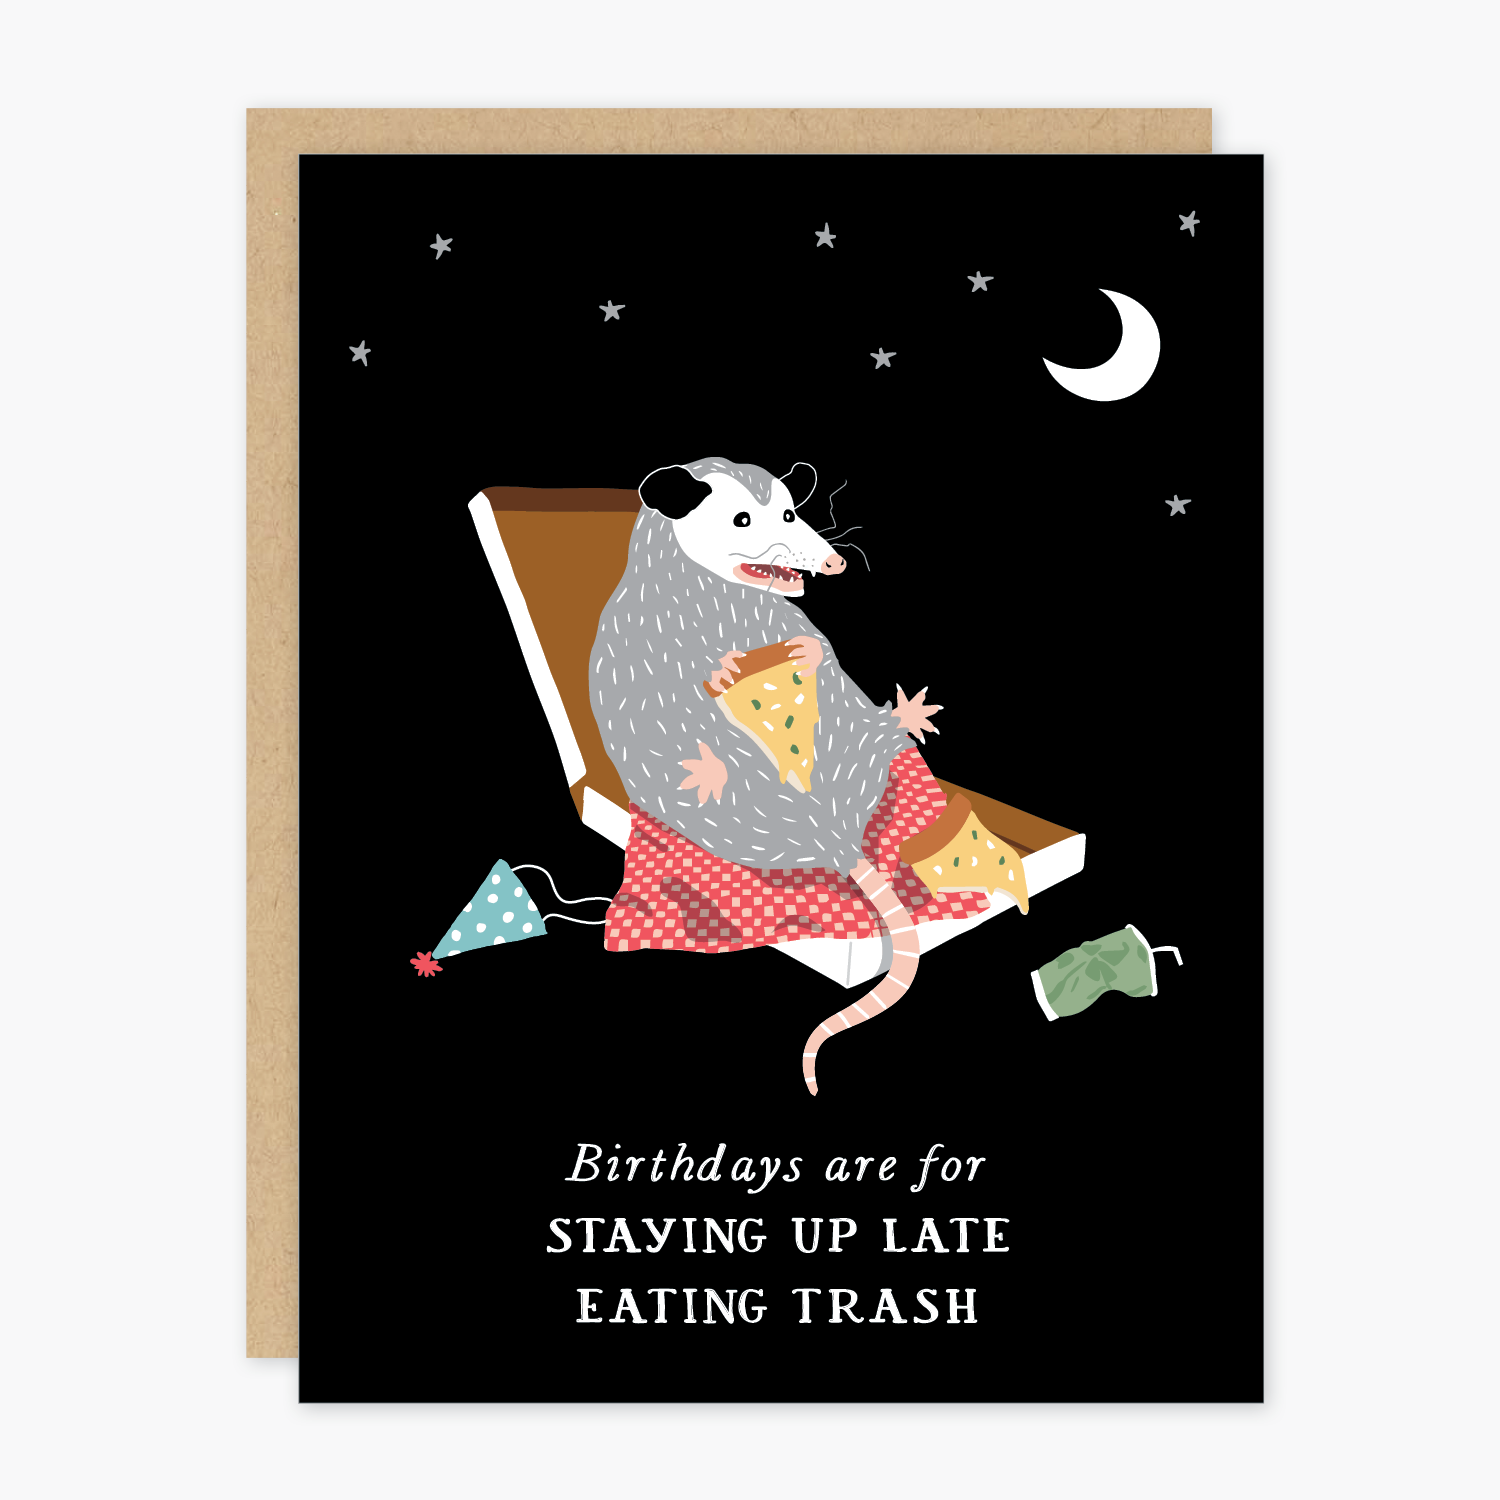 Party of One - POO Possum Stay Up Late and Eat Trash Birthday Card